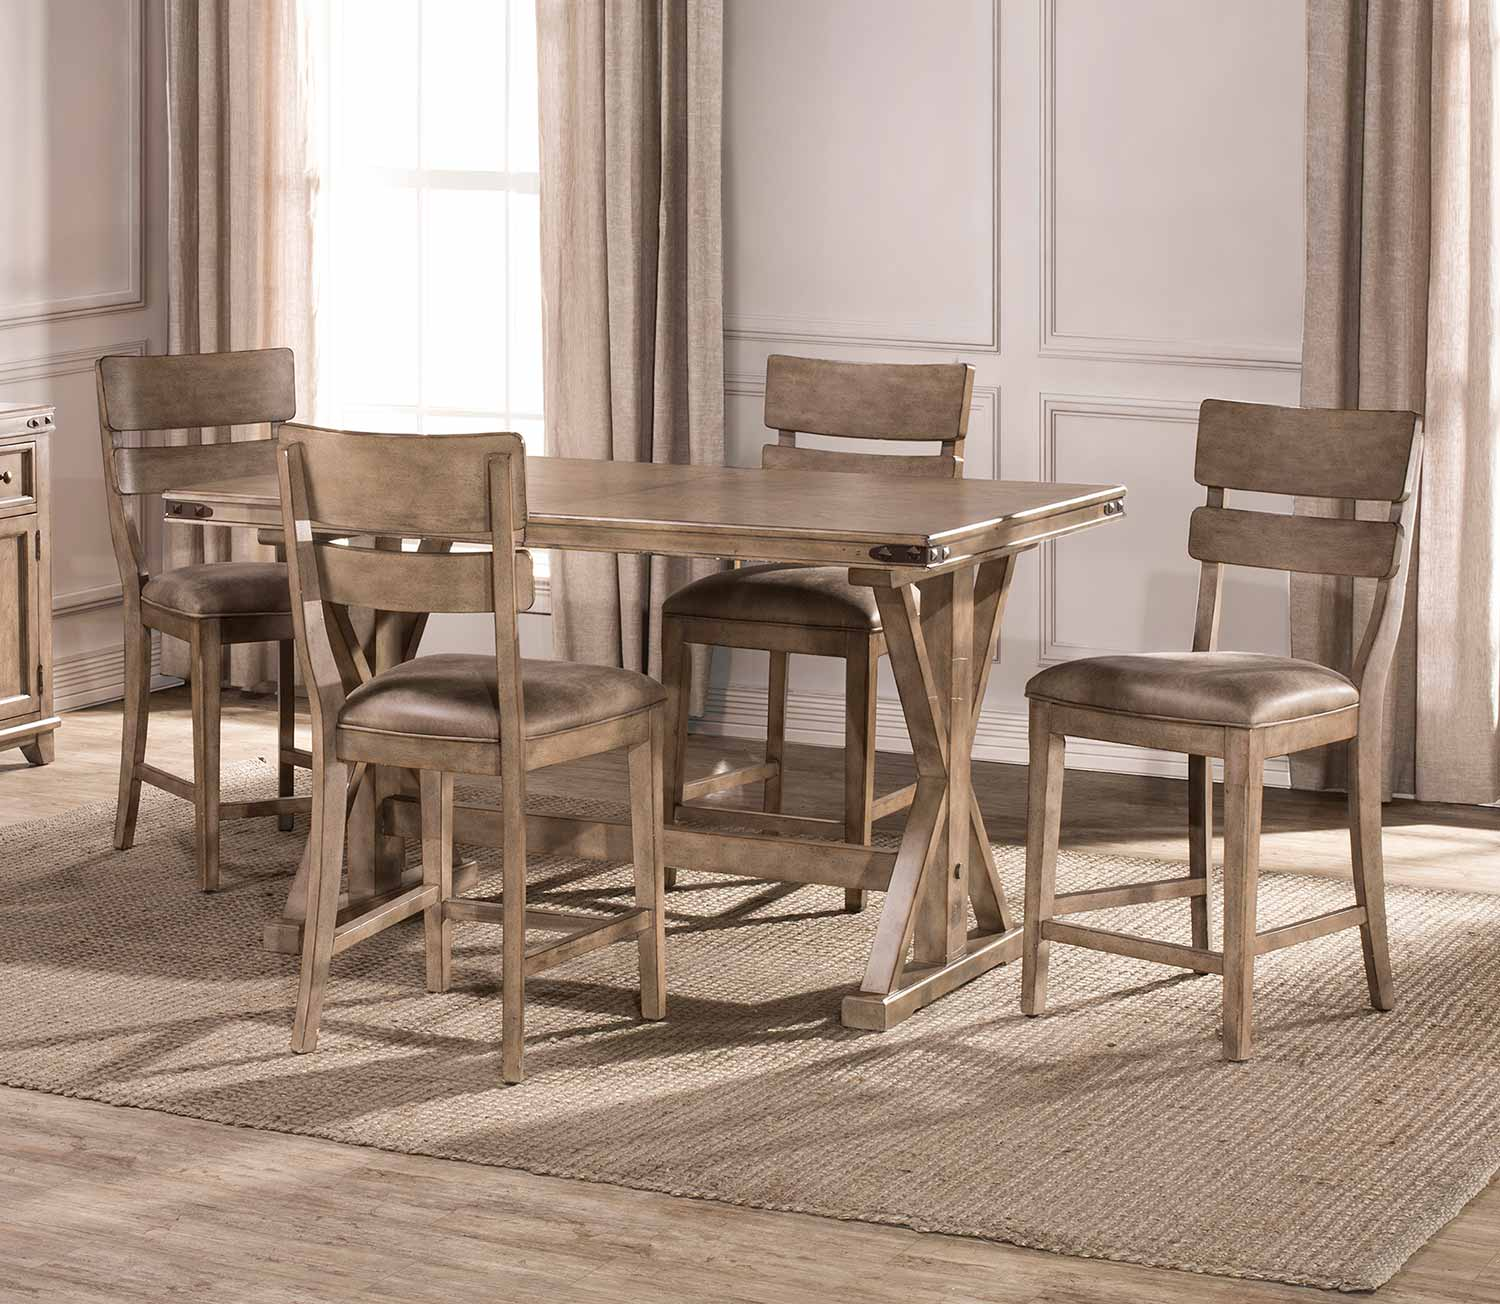 Hillsdale Furniture Bennington 5pc Dining Room Set In: Hillsdale Leclair 5-Piece Counter Height Dining Set